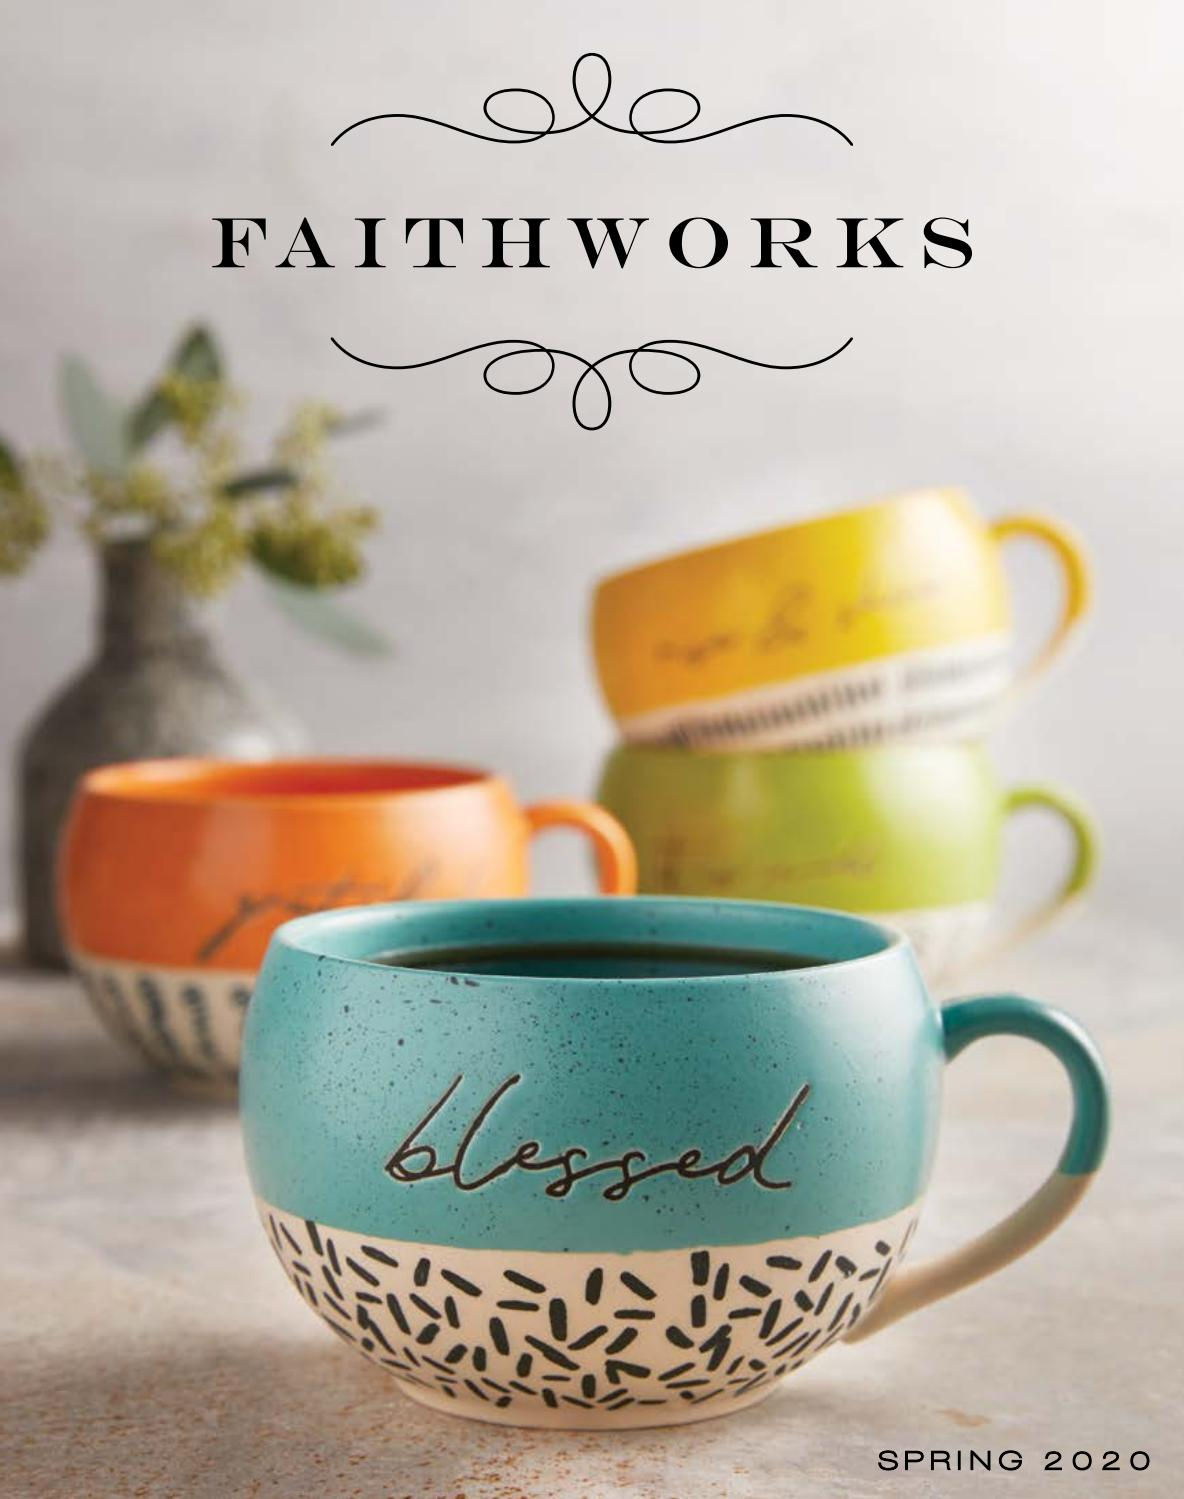 Faithworks Spring 2020 By Just Got 2 Have It Issuu